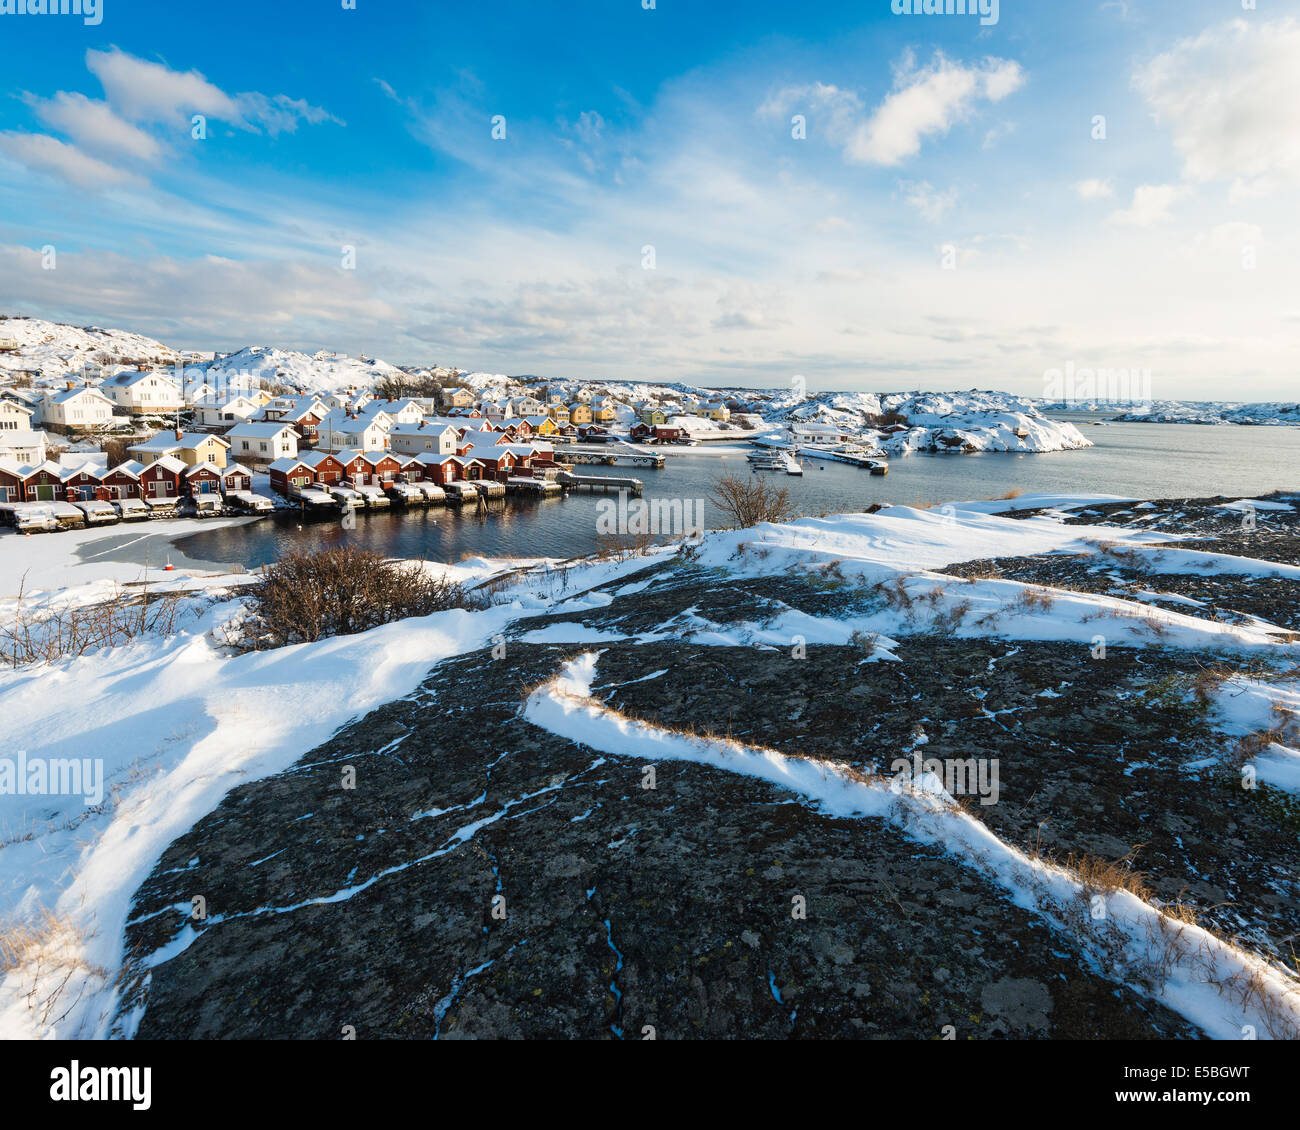 Houses at the coast in winter season, Sweden. Stock Photo